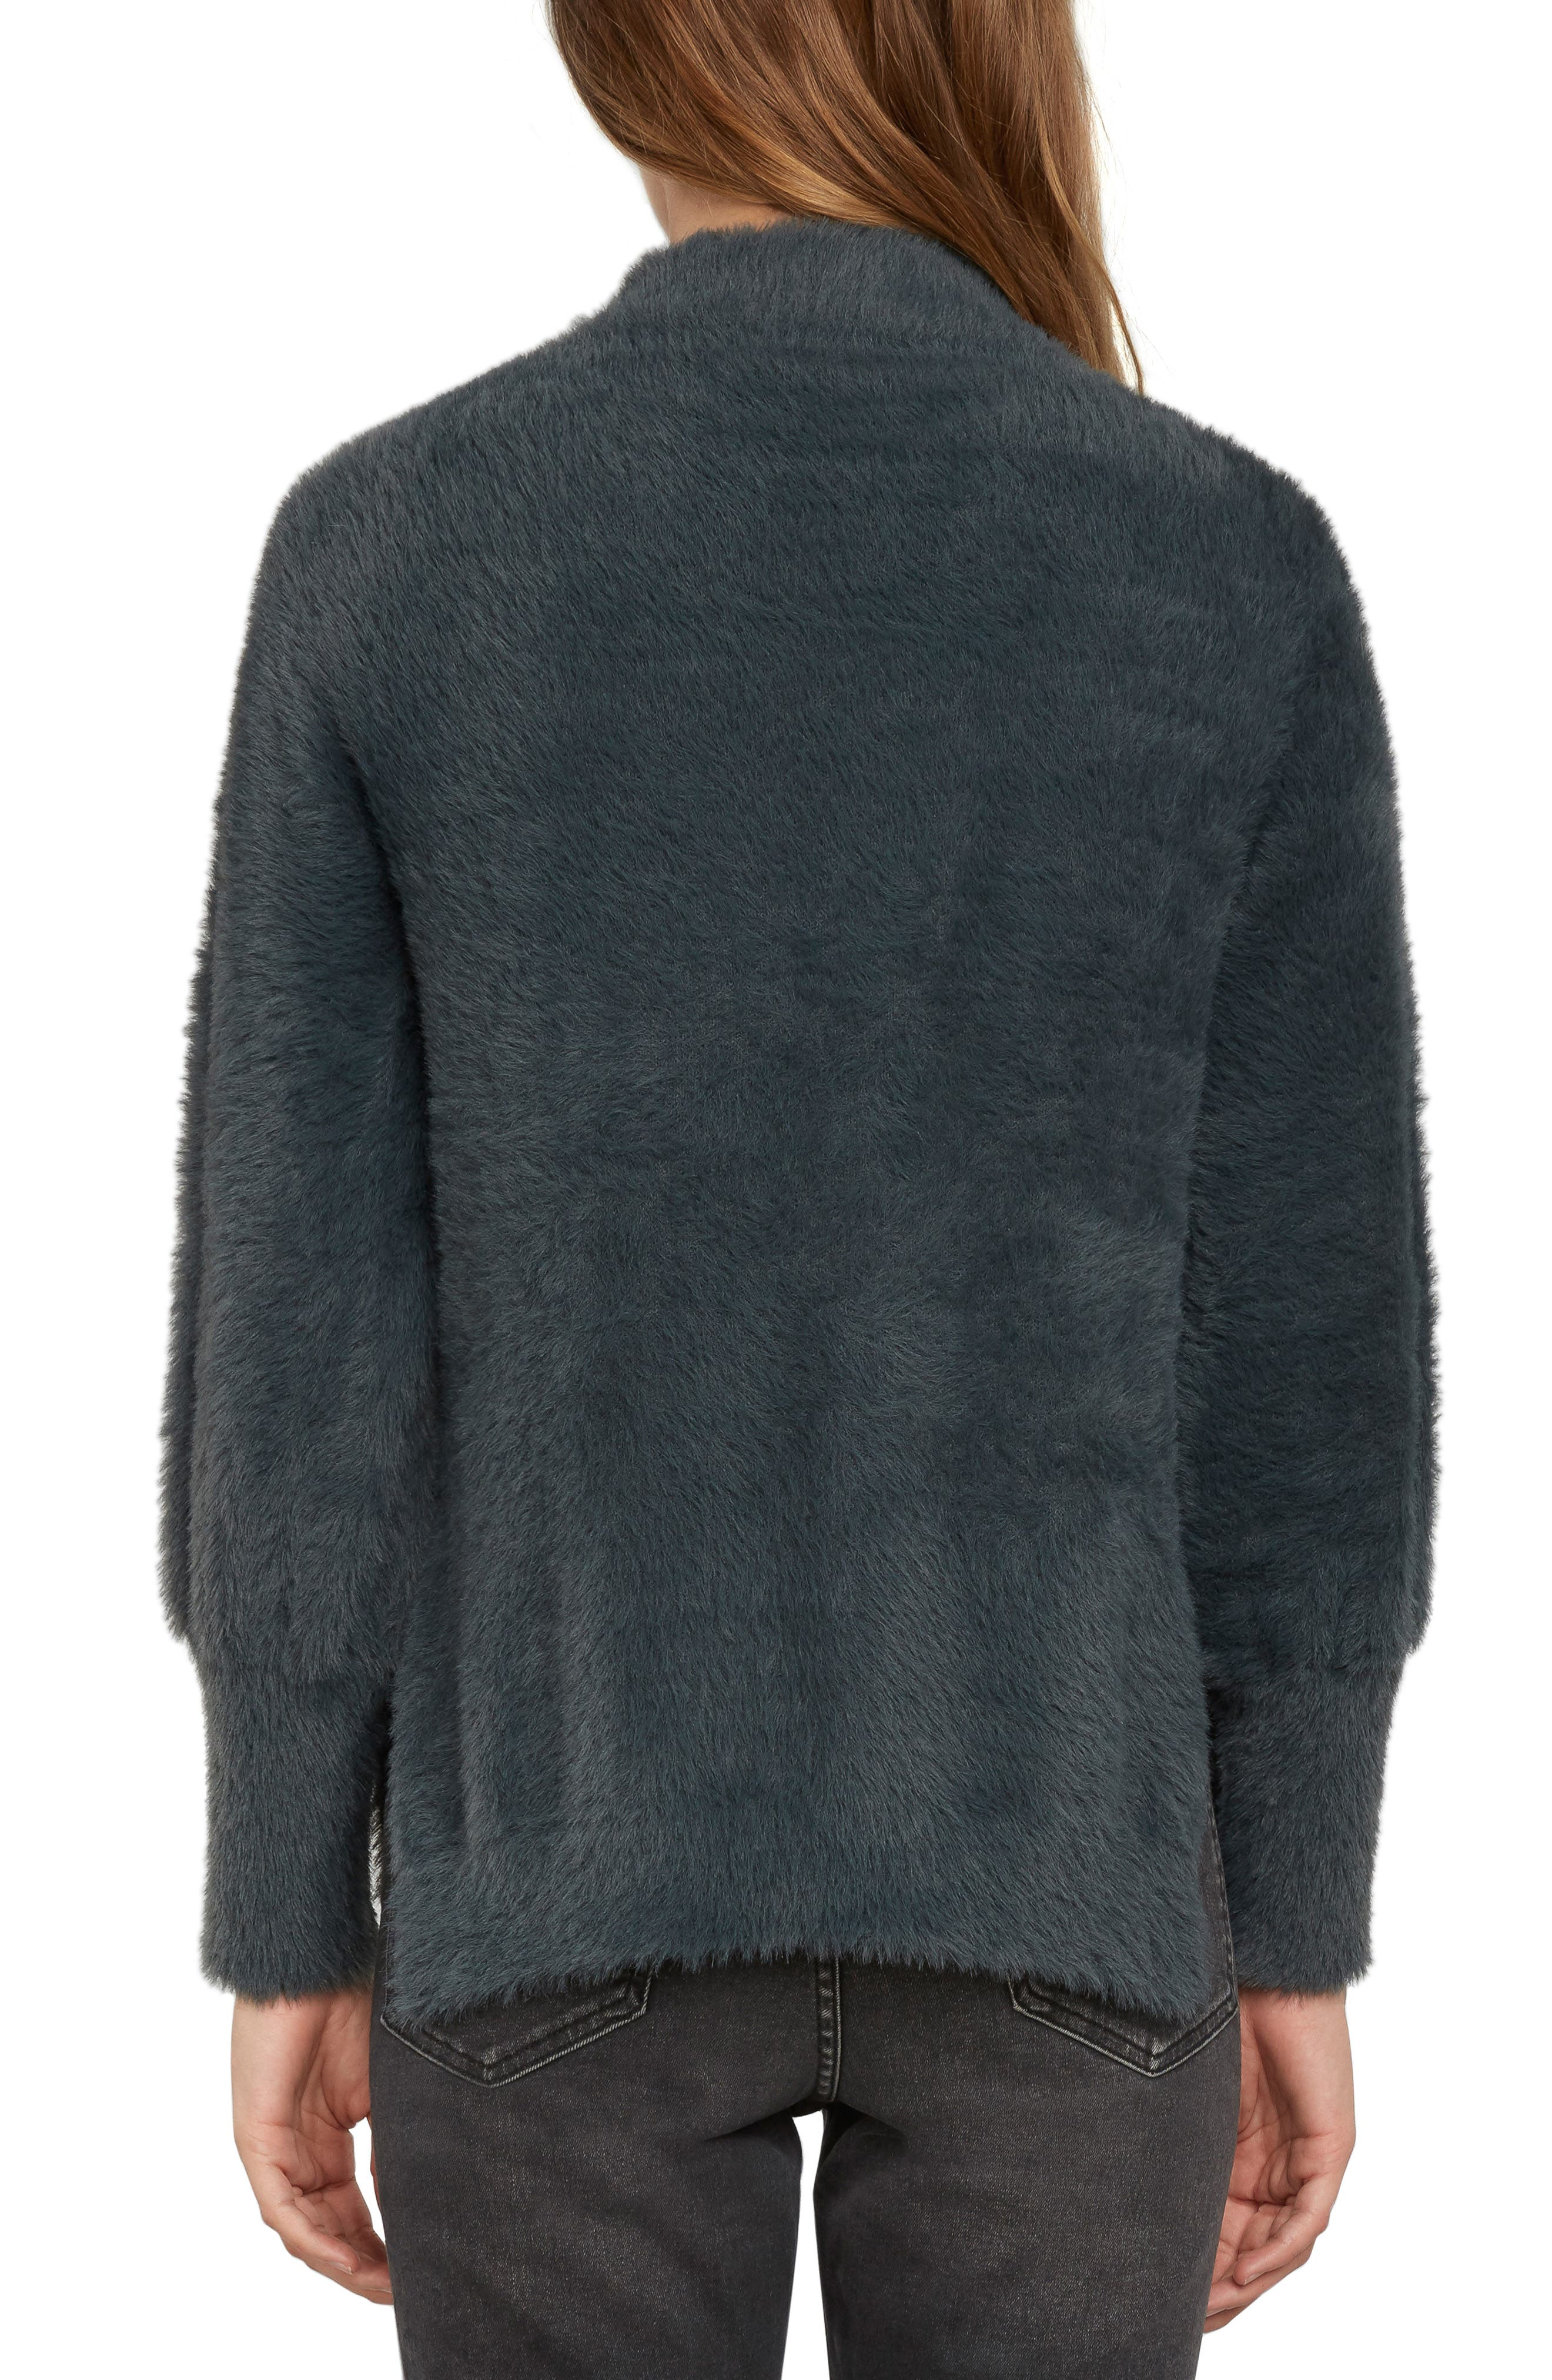 Fuzzy Mock Neck Sweater,                             Alternate thumbnail 2, color,                             025